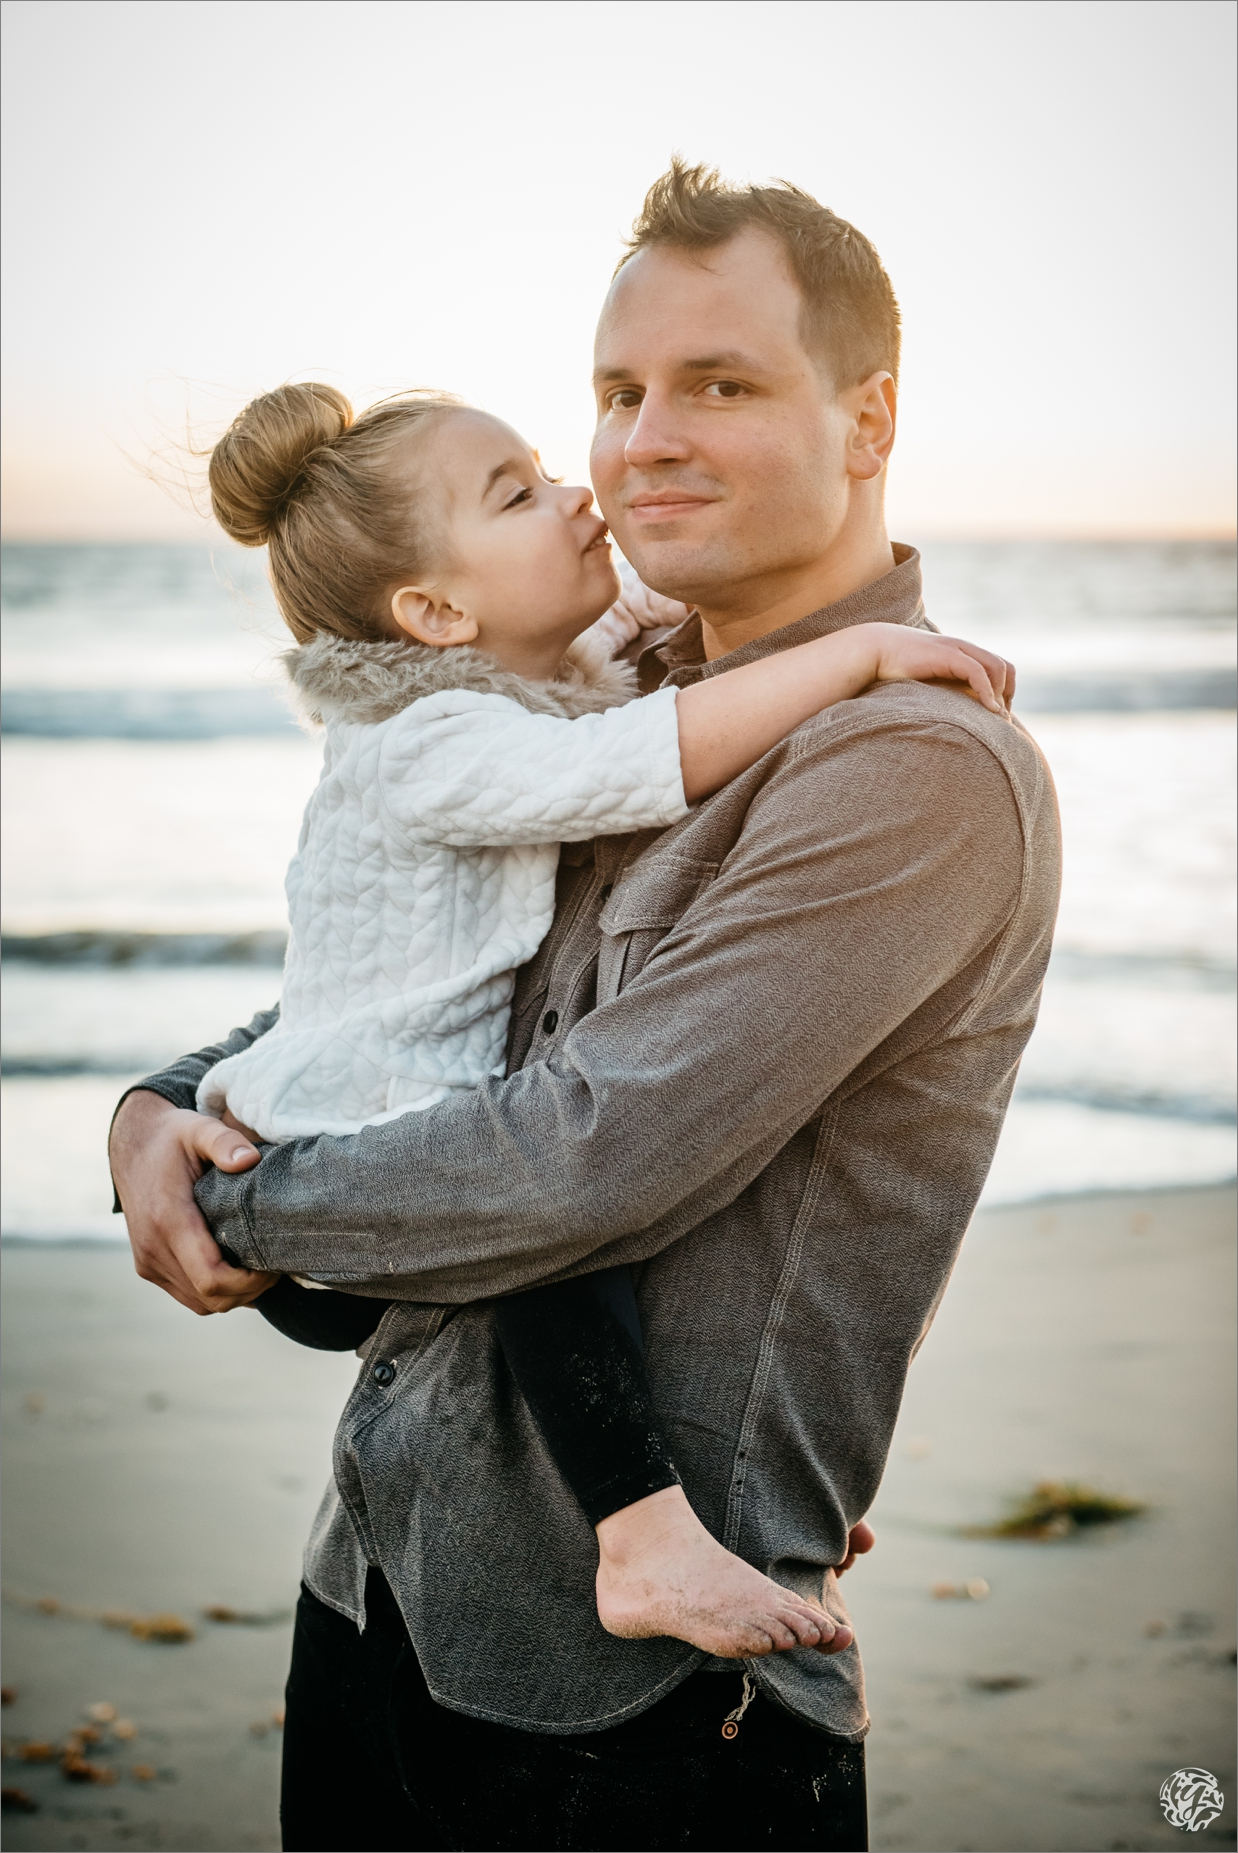 Father and daughter at Malibu Beach - Los Angeles Beach Photographer 3286.jpg